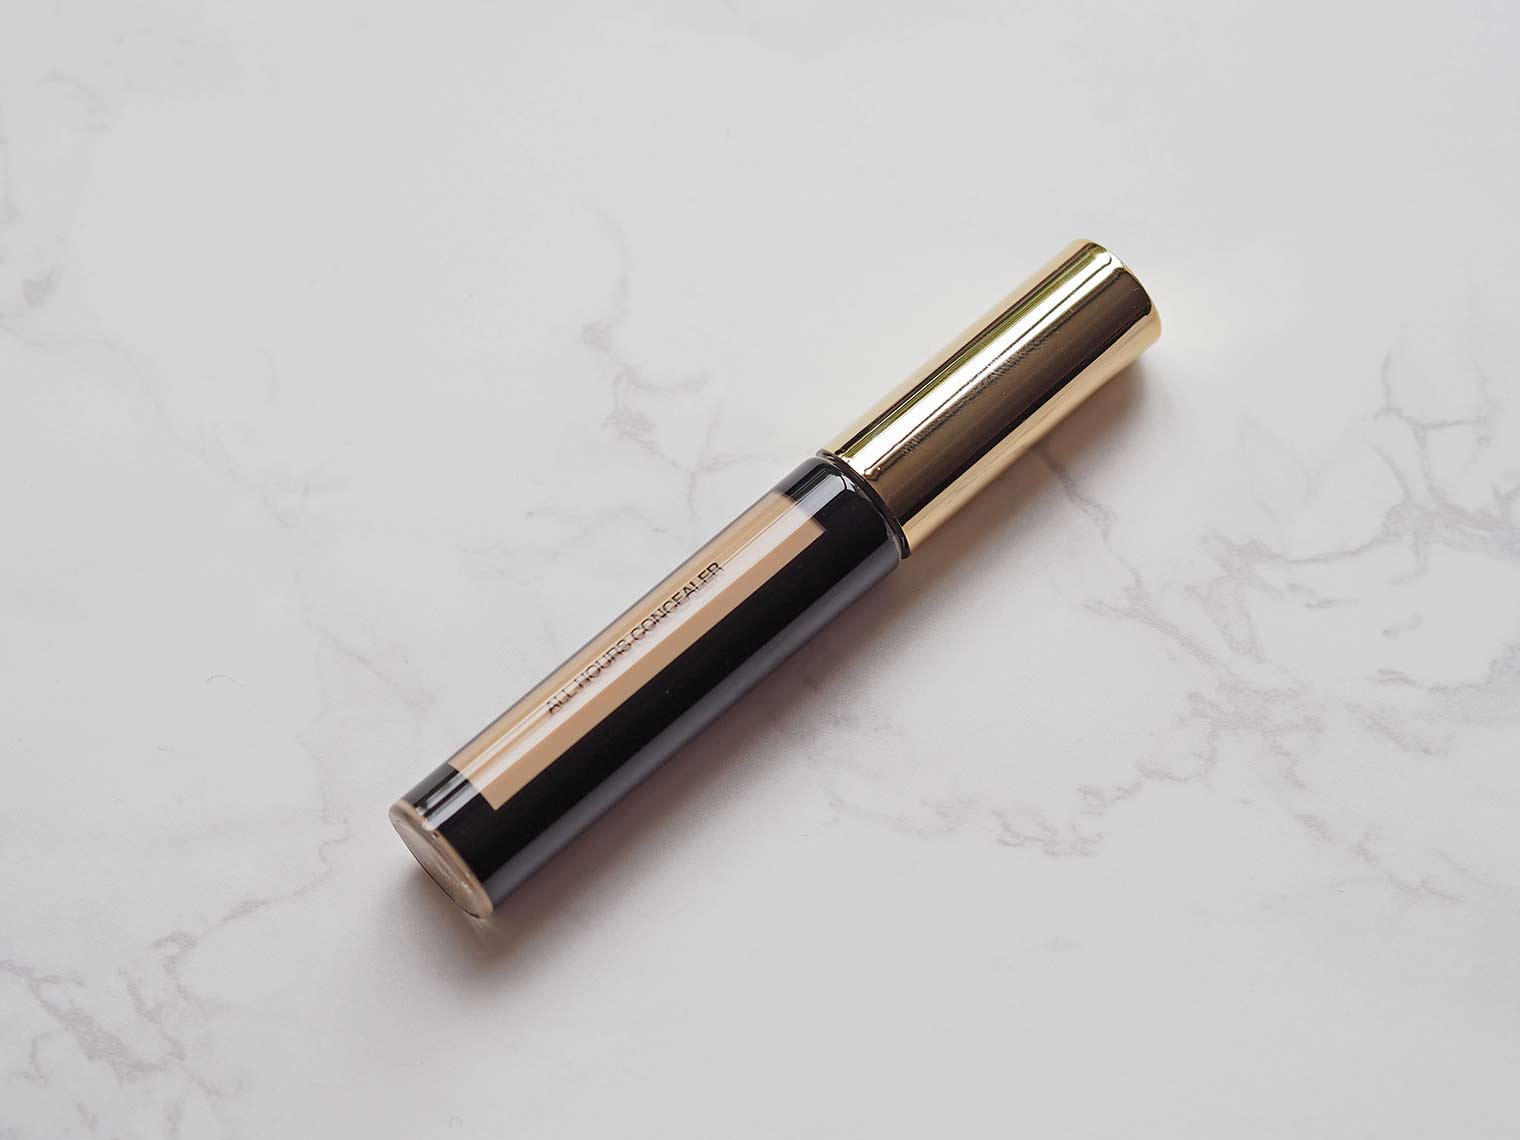 YSL makeup All Hours Concealer